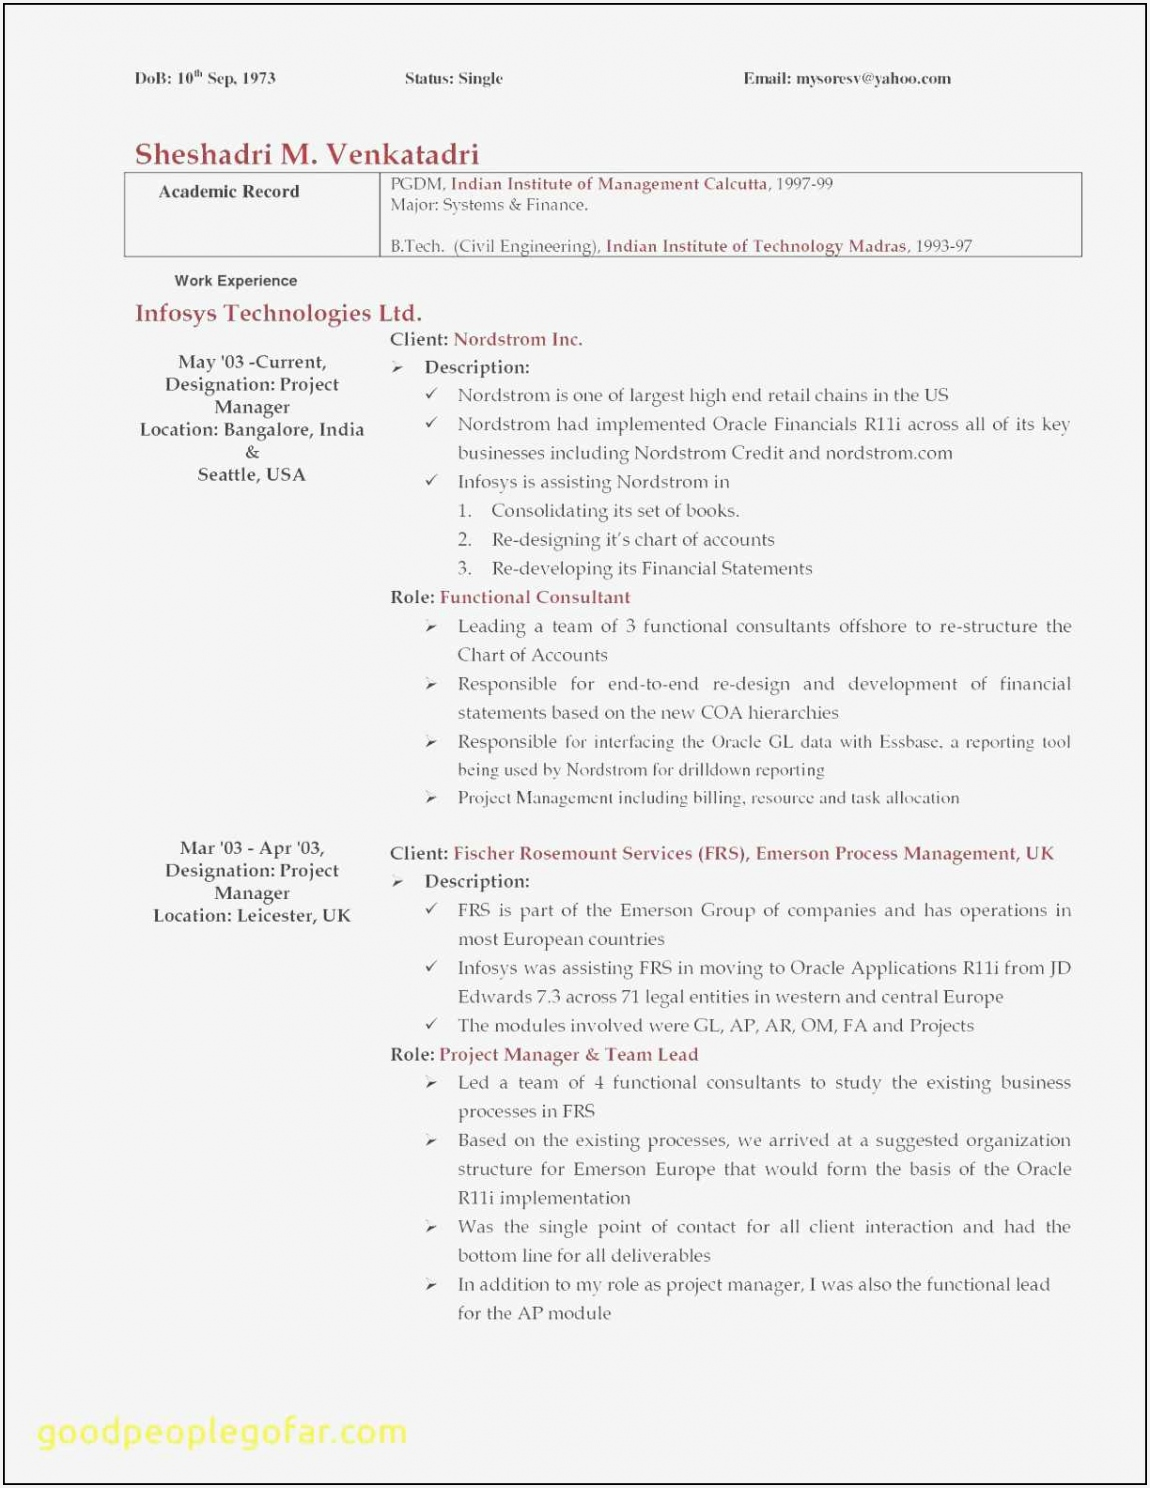 Skills A Cv Examples Beautiful s Resume Resume Sample for Cook Position Skills to Include 148811508Eq4u